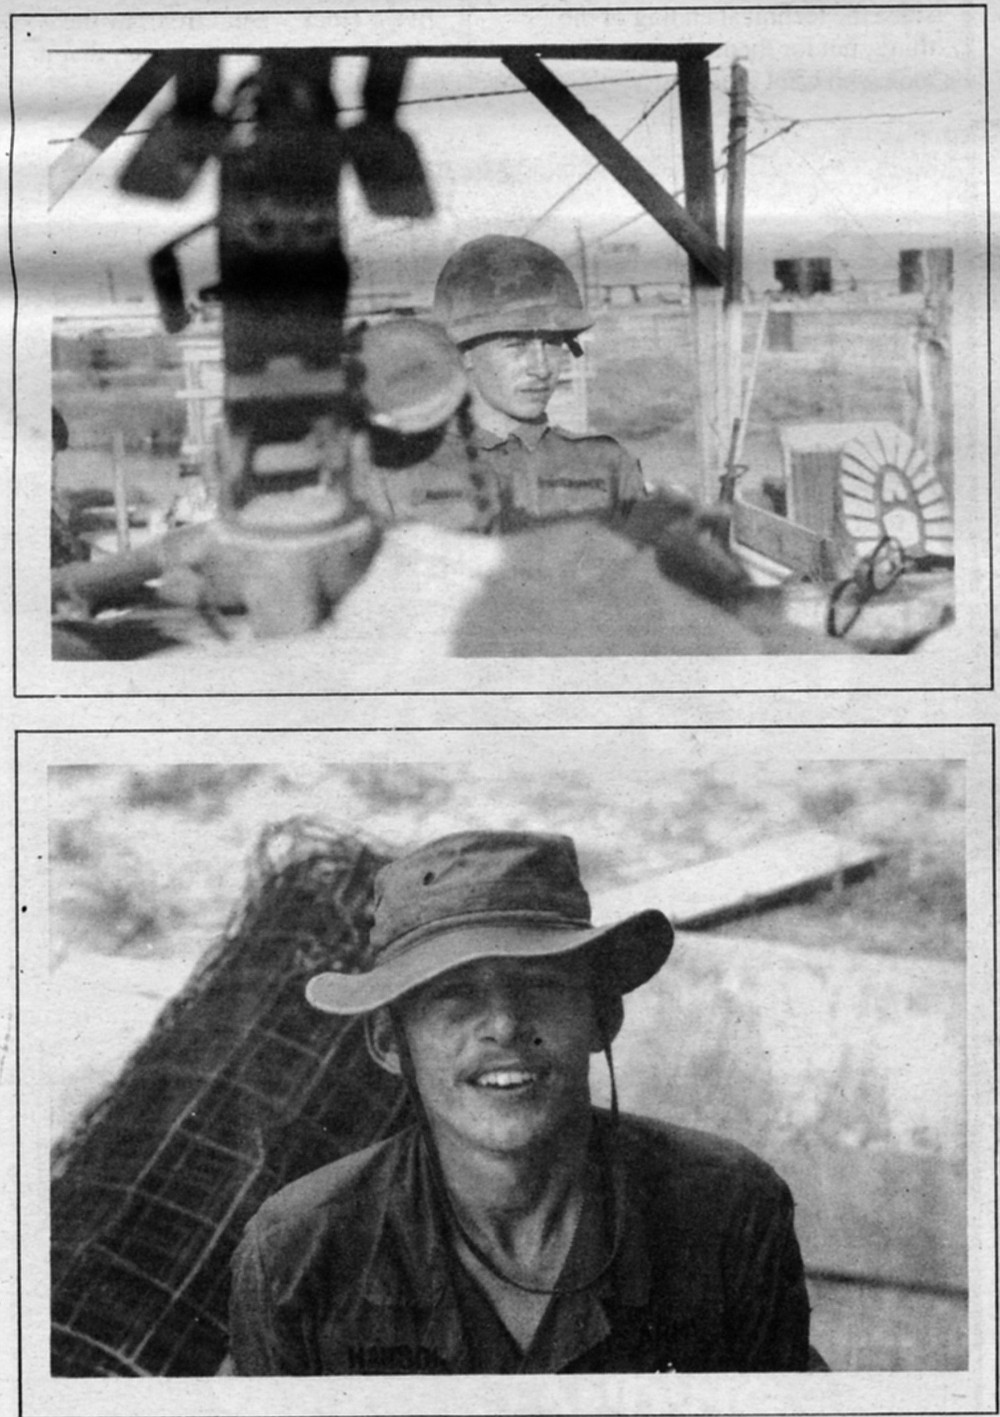 Dong Tam, 1968. We went immediately to what we had been doing in the war, what units we belonged to, and who else from Hilltop we had seen or had come across over there.